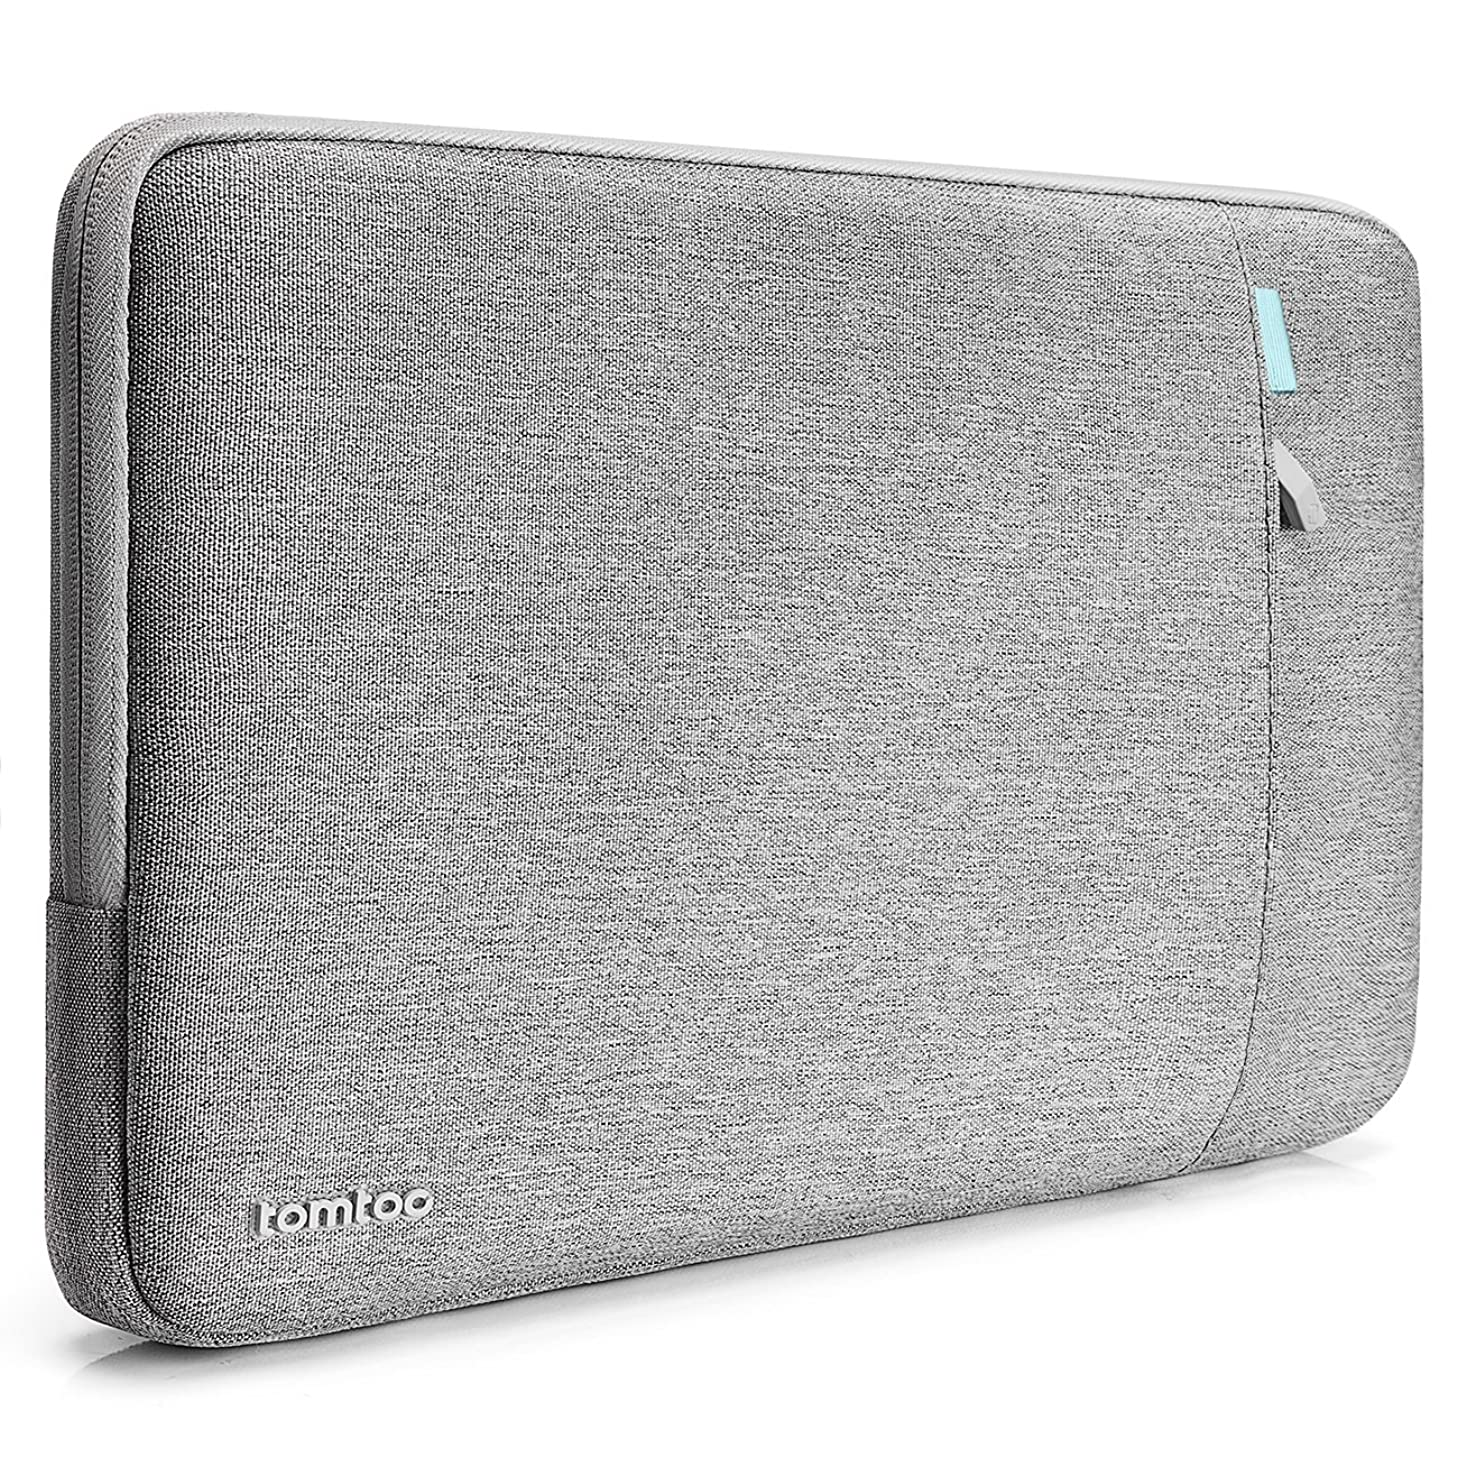 tomtoc 360° Protective 13-13.5 Inch Laptop Sleeve compatible with Microsoft 13.5